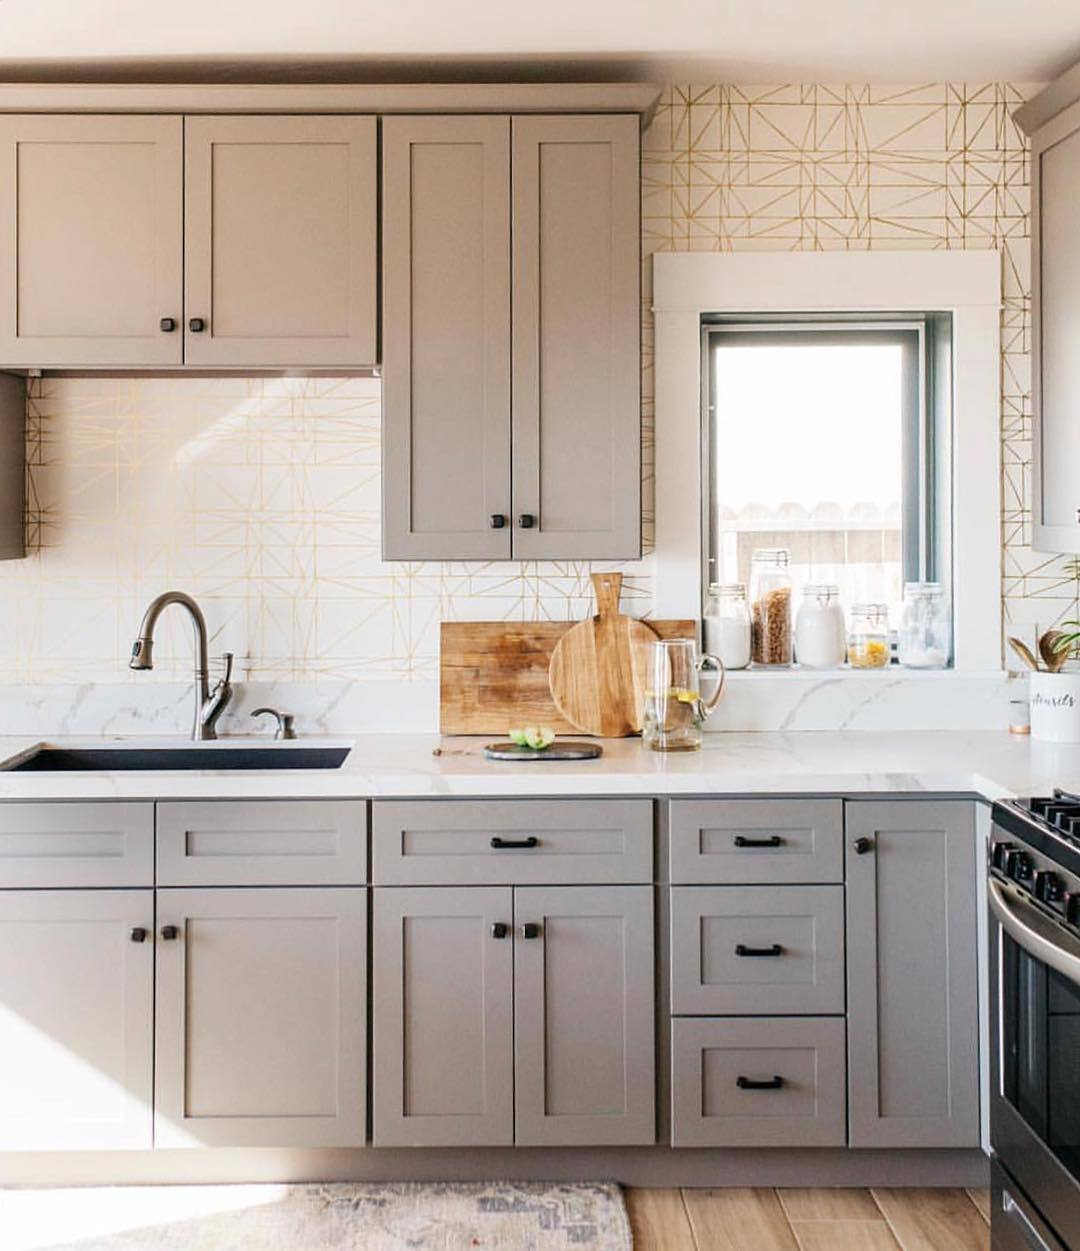 Our Favorite Patterns for the Kitchen | Strike Gold wallpaper | Heath Ceramics | Hygge & West